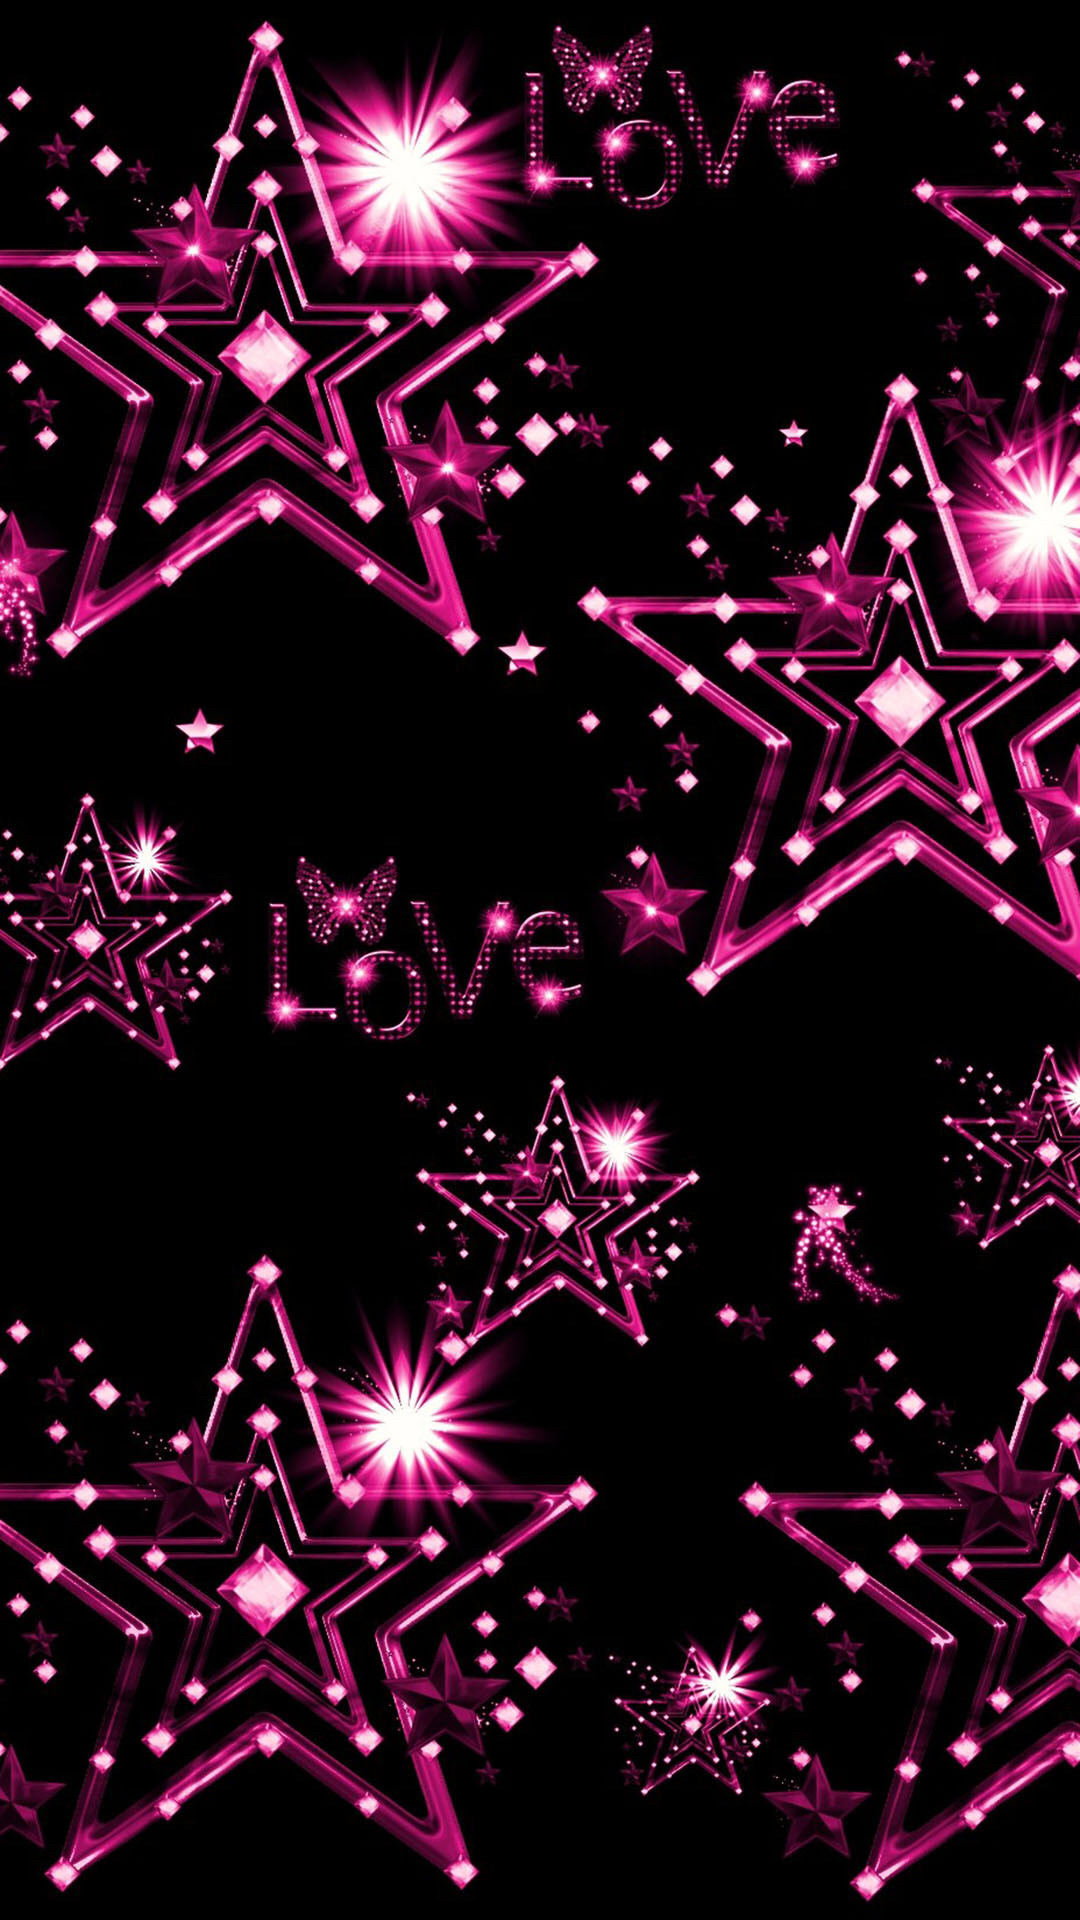 Stars And Hearts Wallpaper 35 Images